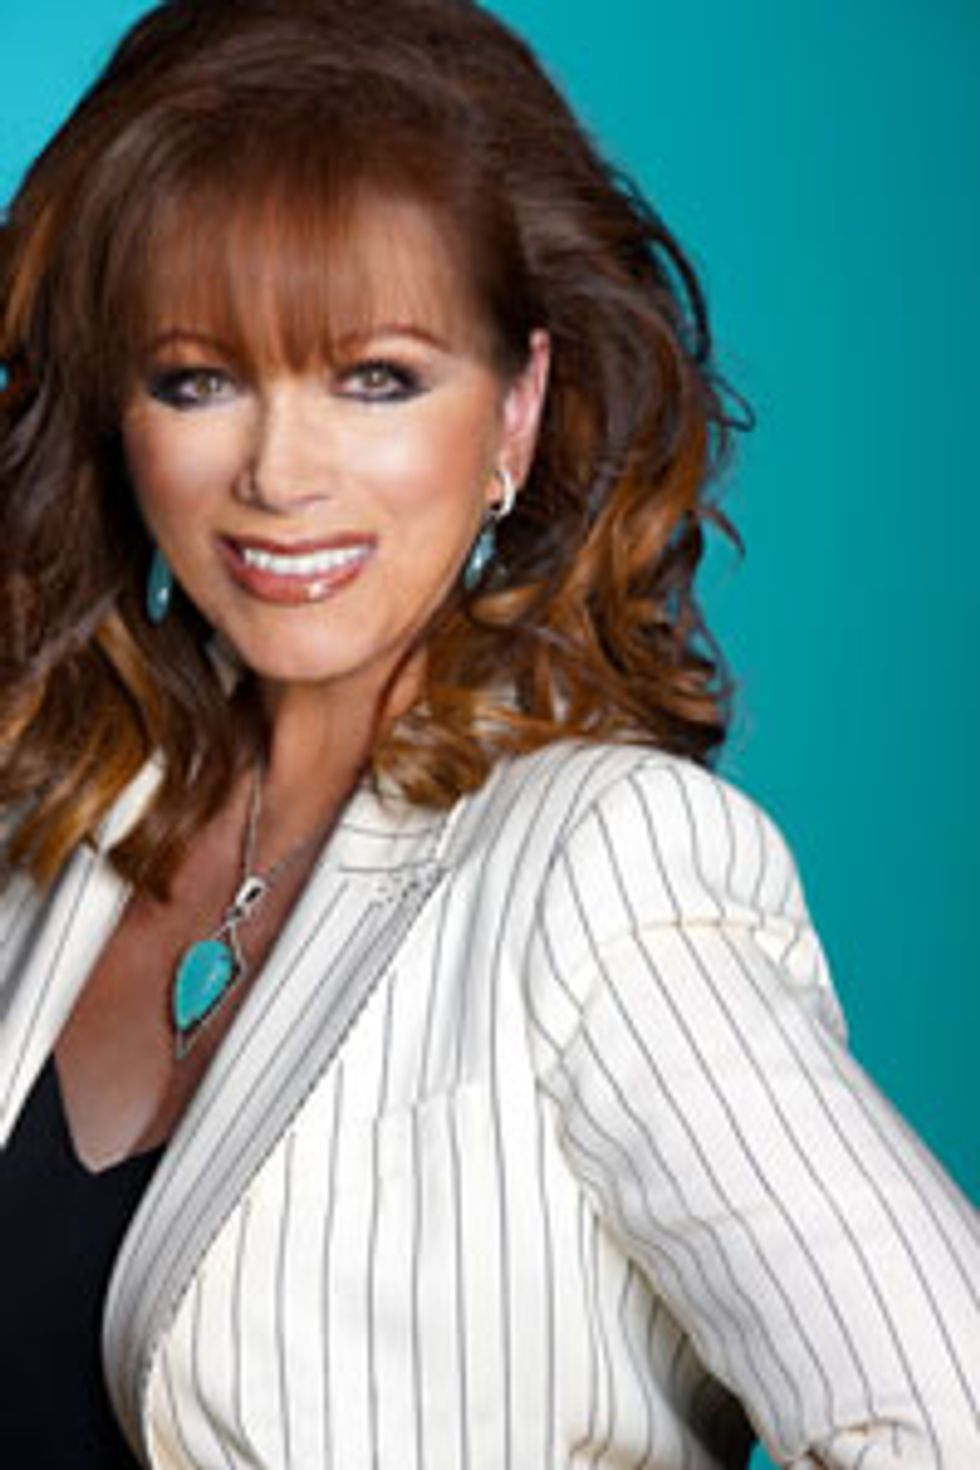 Jackie Collins Chats With PAPERMAG About George Clooney, Keeps Mum about Marlon Brando